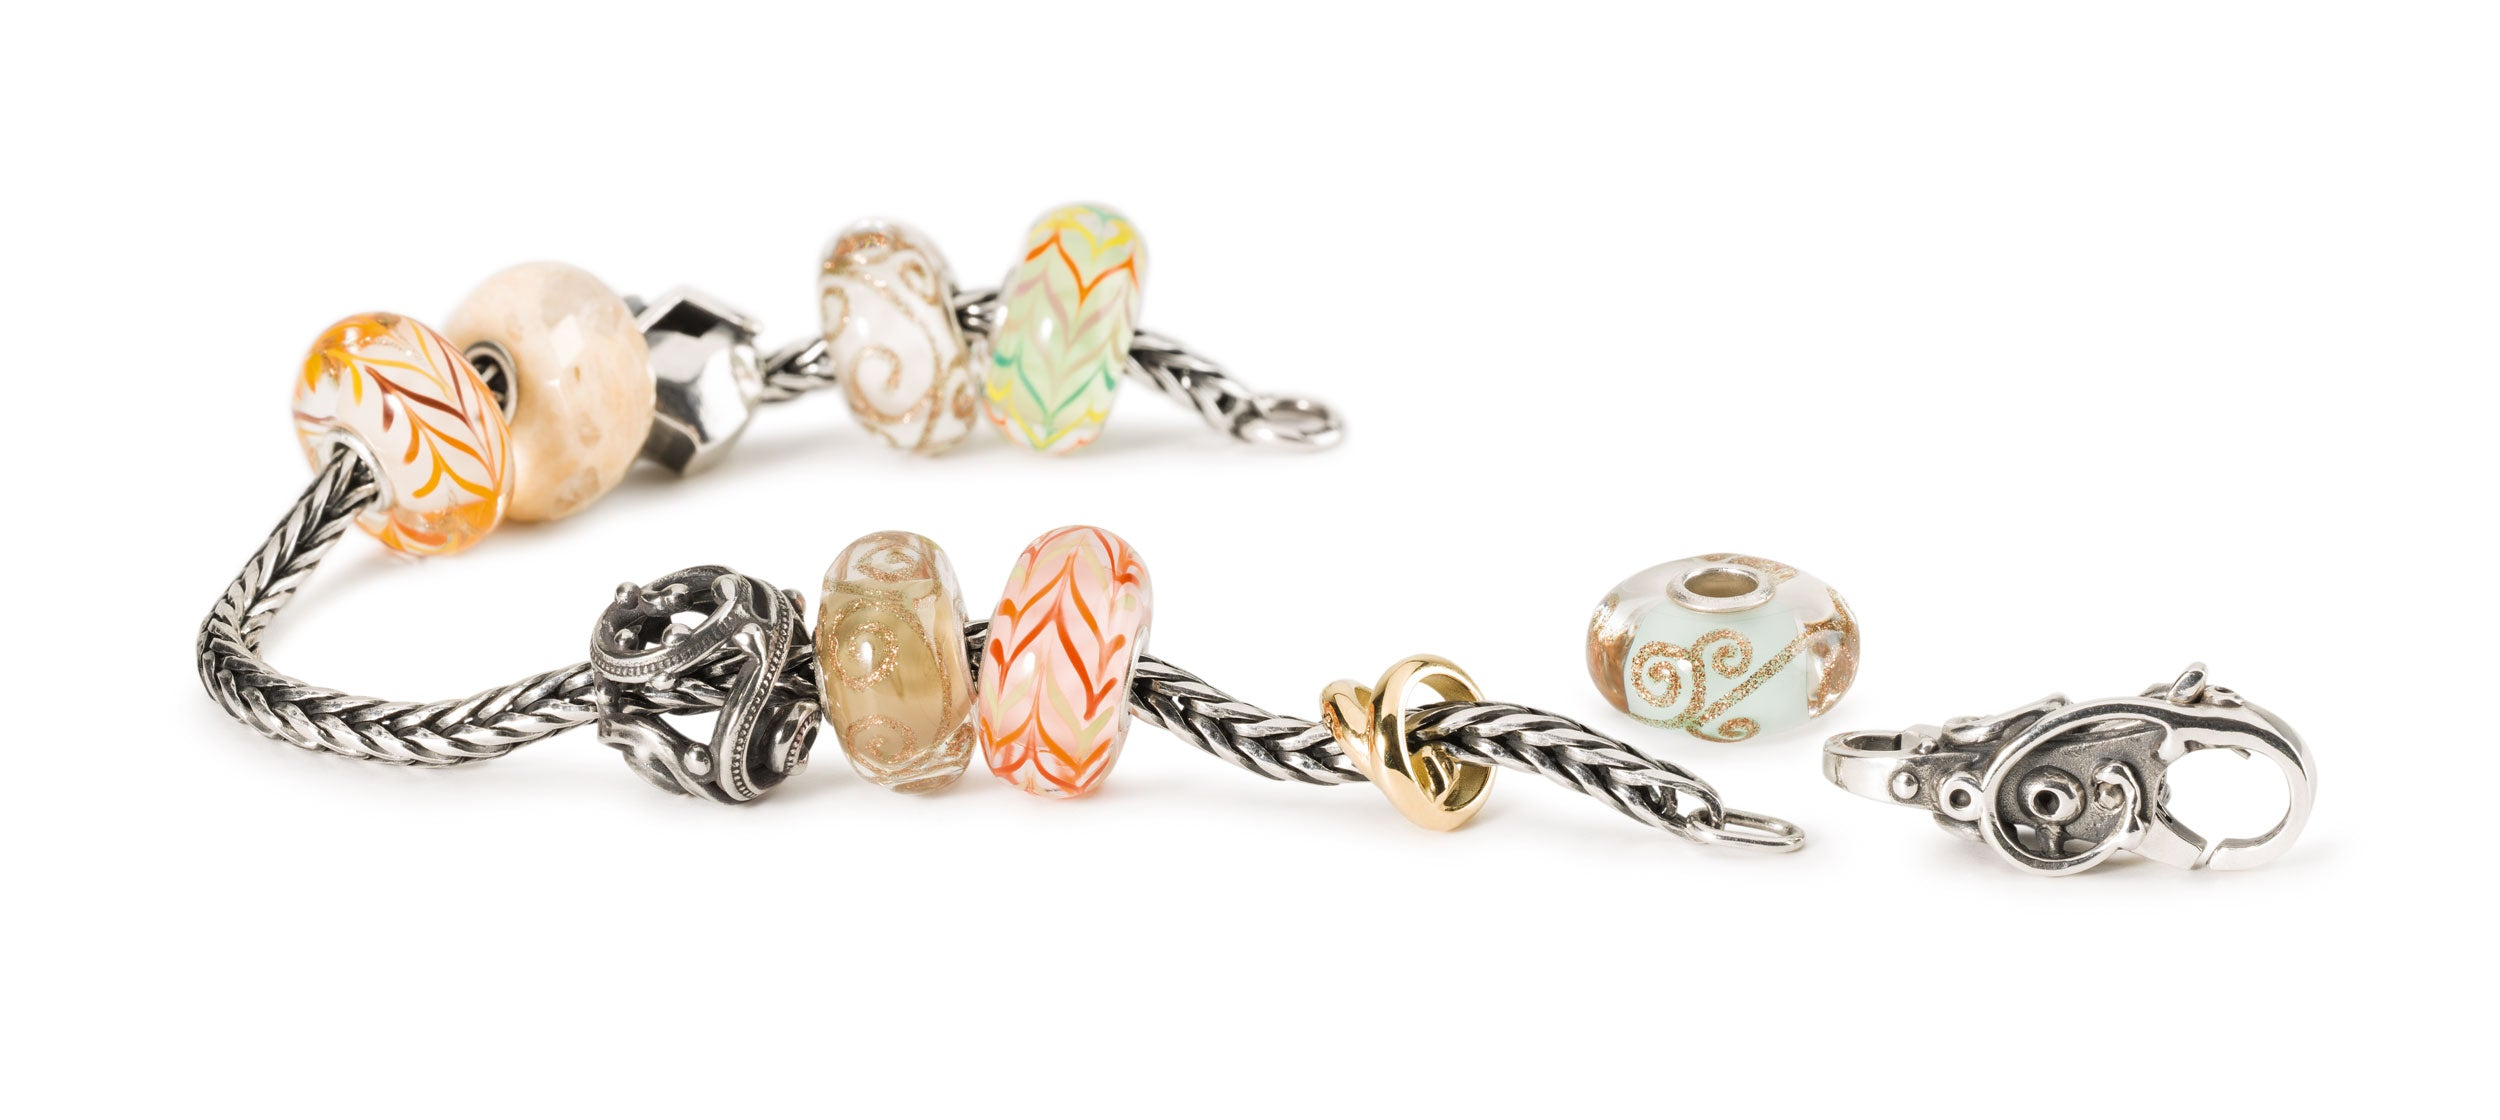 Trollbeads Frühlingskollektion 2020 | Spring Collection Love Stories